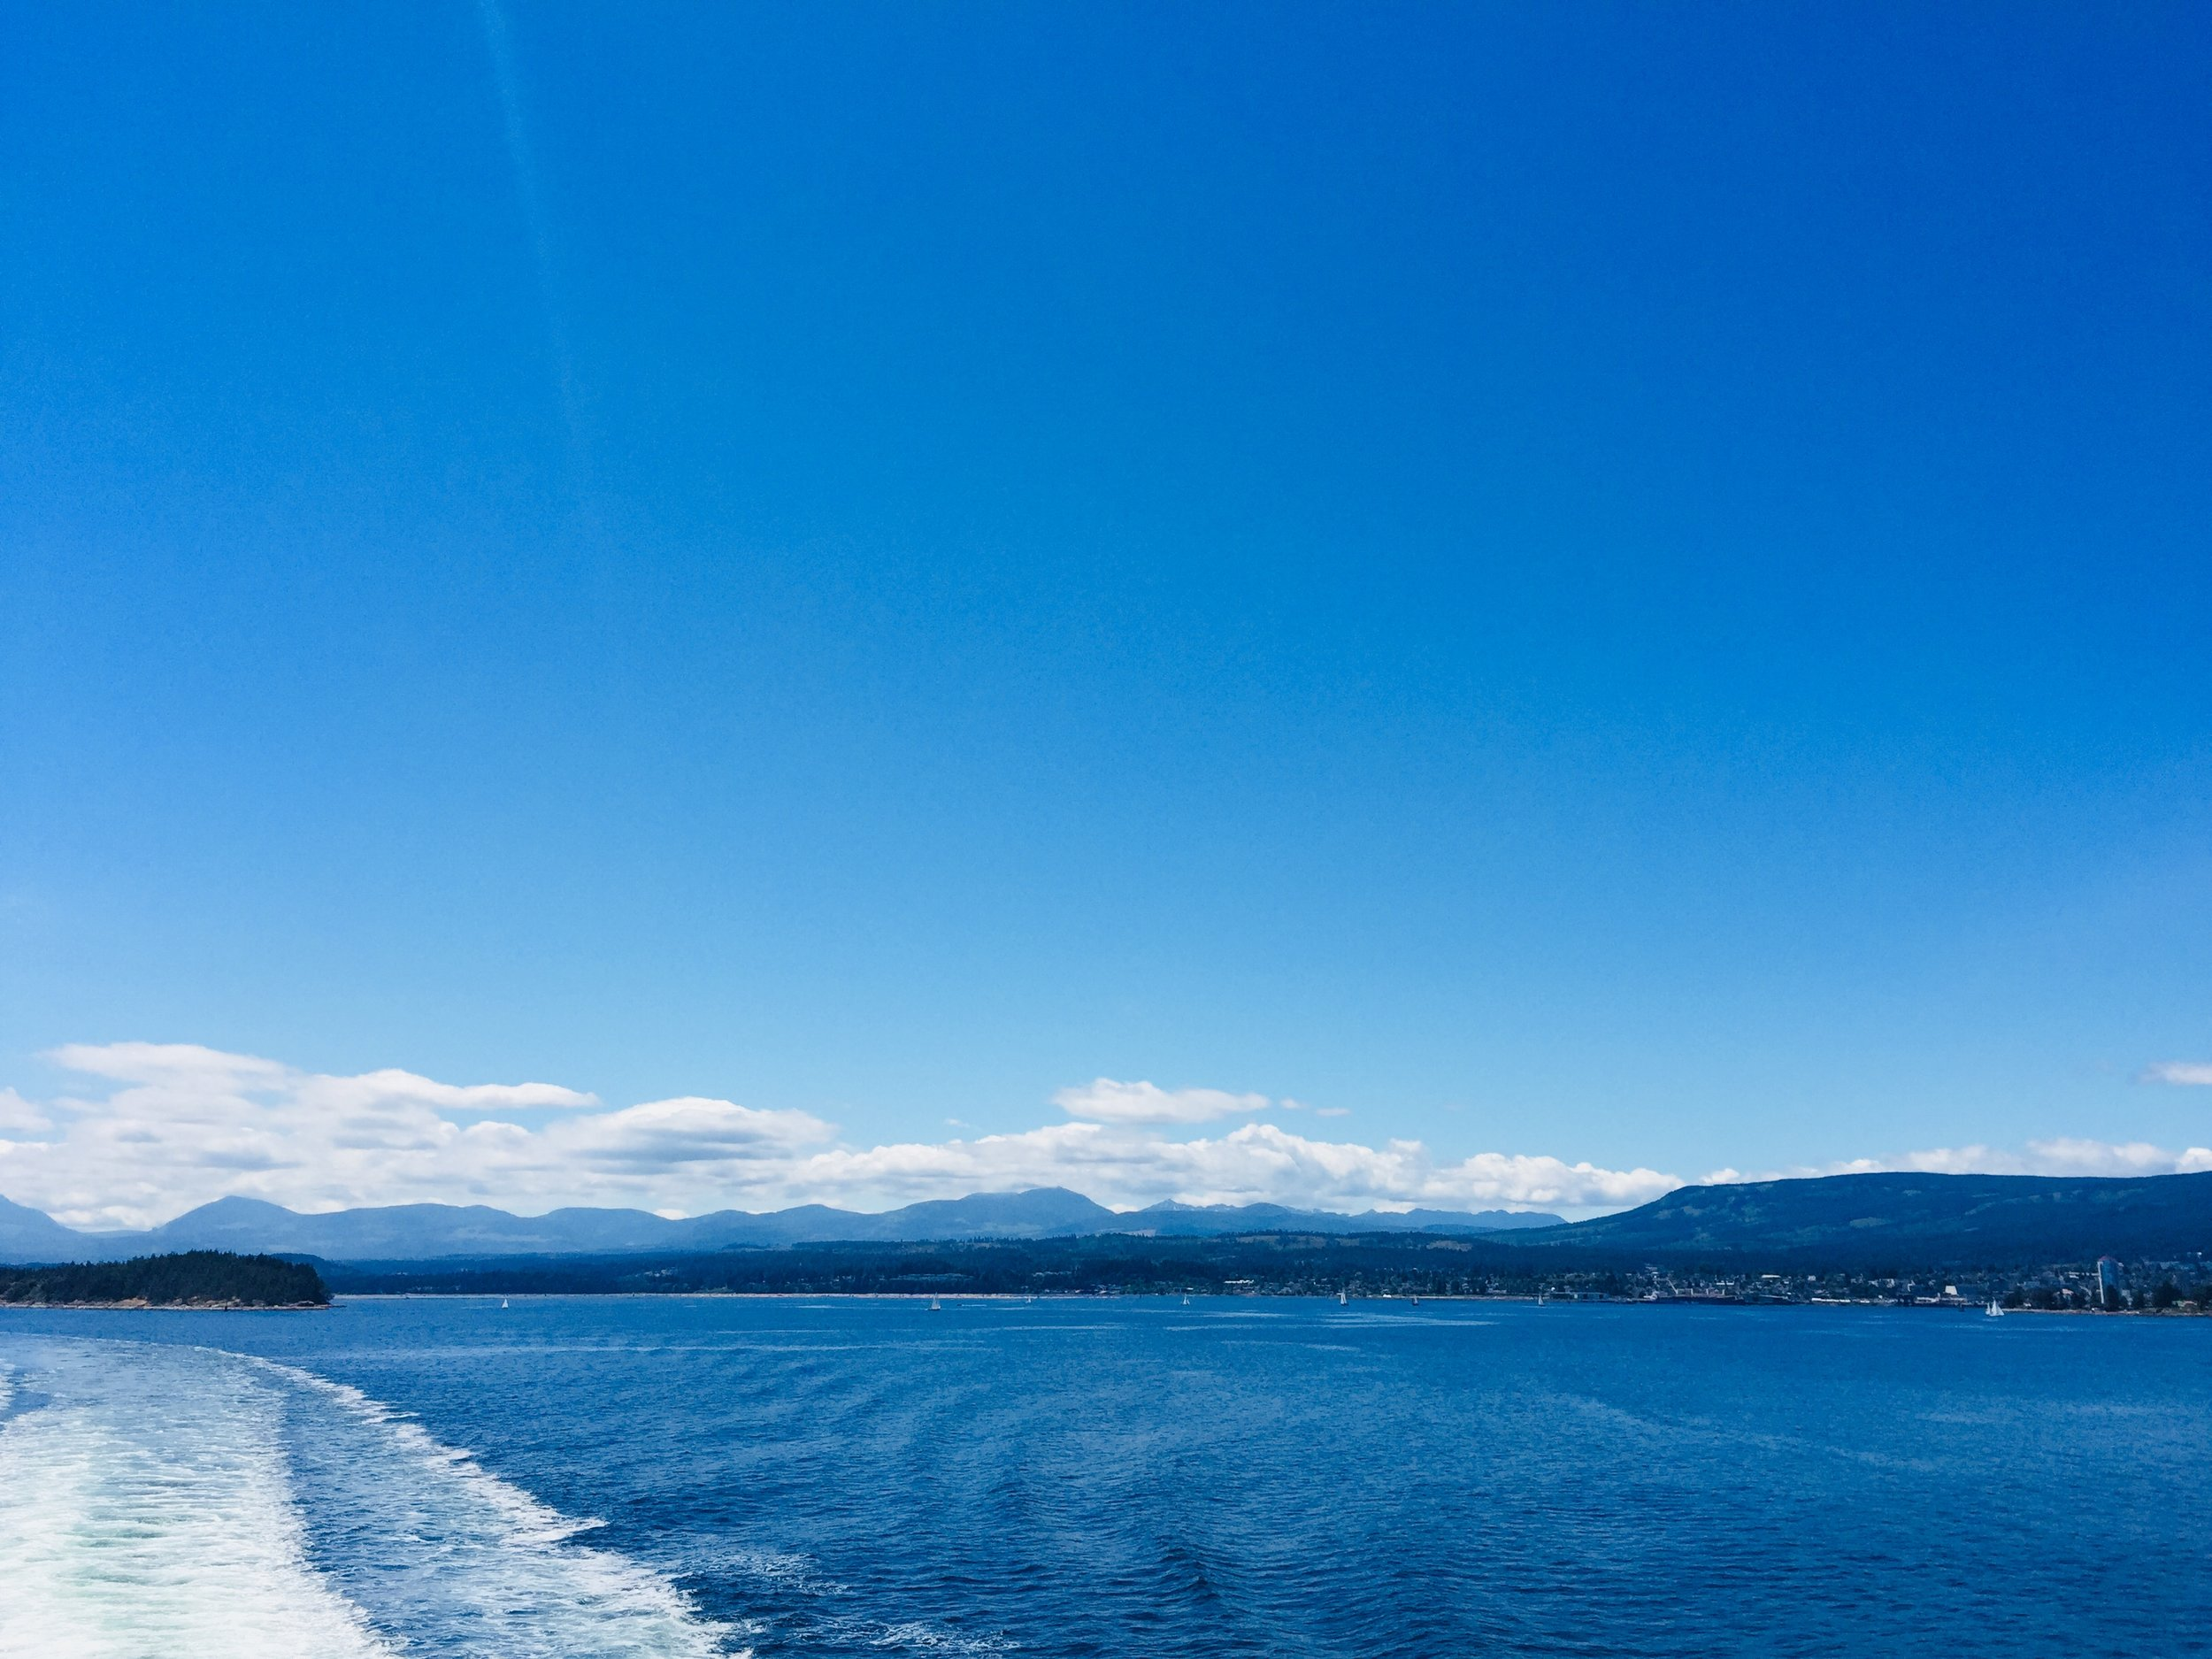 Views from the ferry crossing.